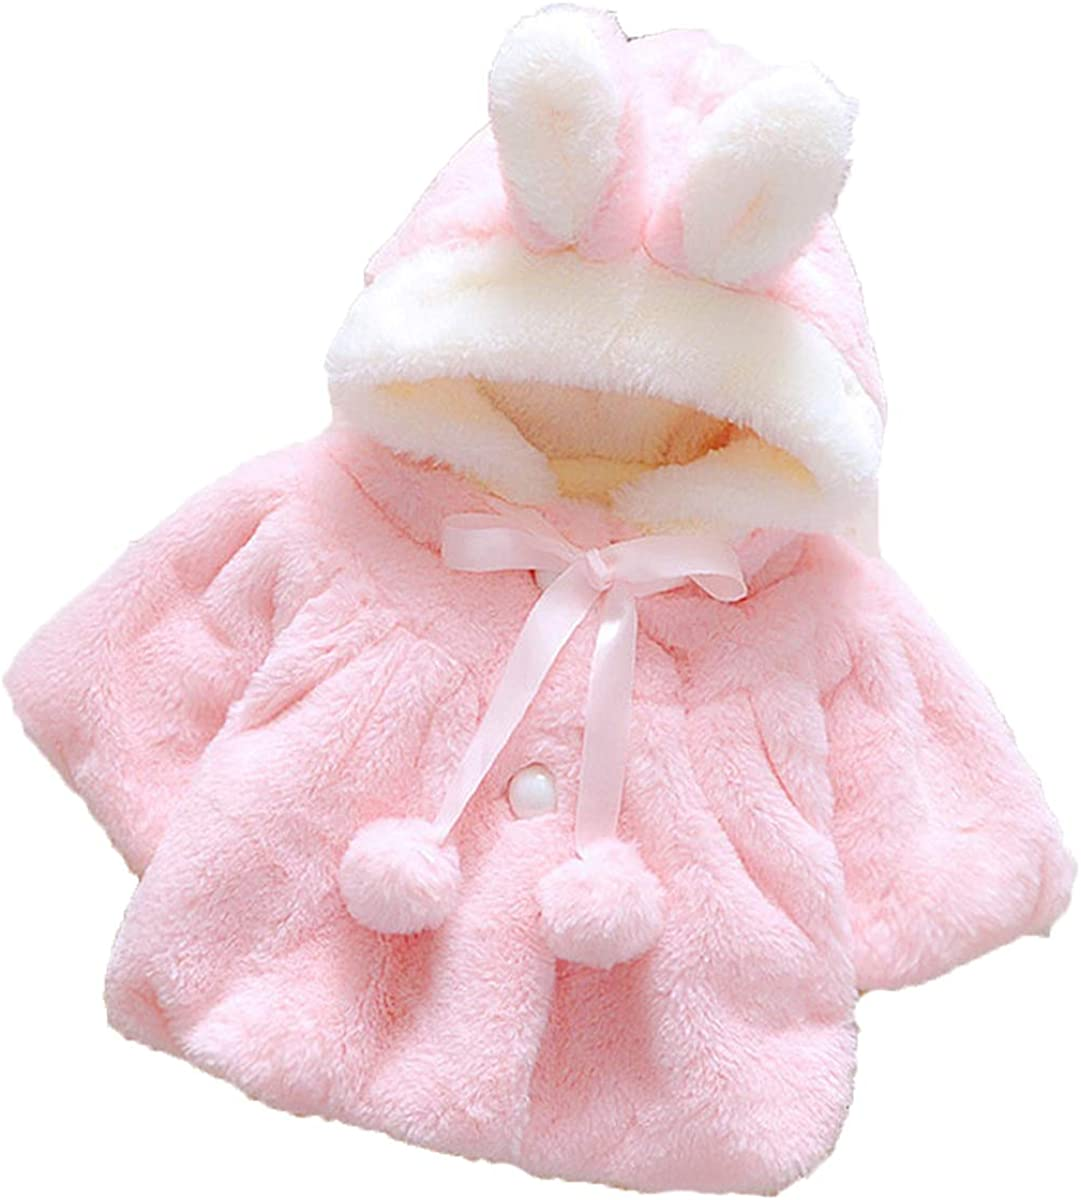 LXXIASHI Ranking integrated 1st 2021 new place Toddler Baby Girl Winter Fur Rabbit Ears Coat Hooded Ja